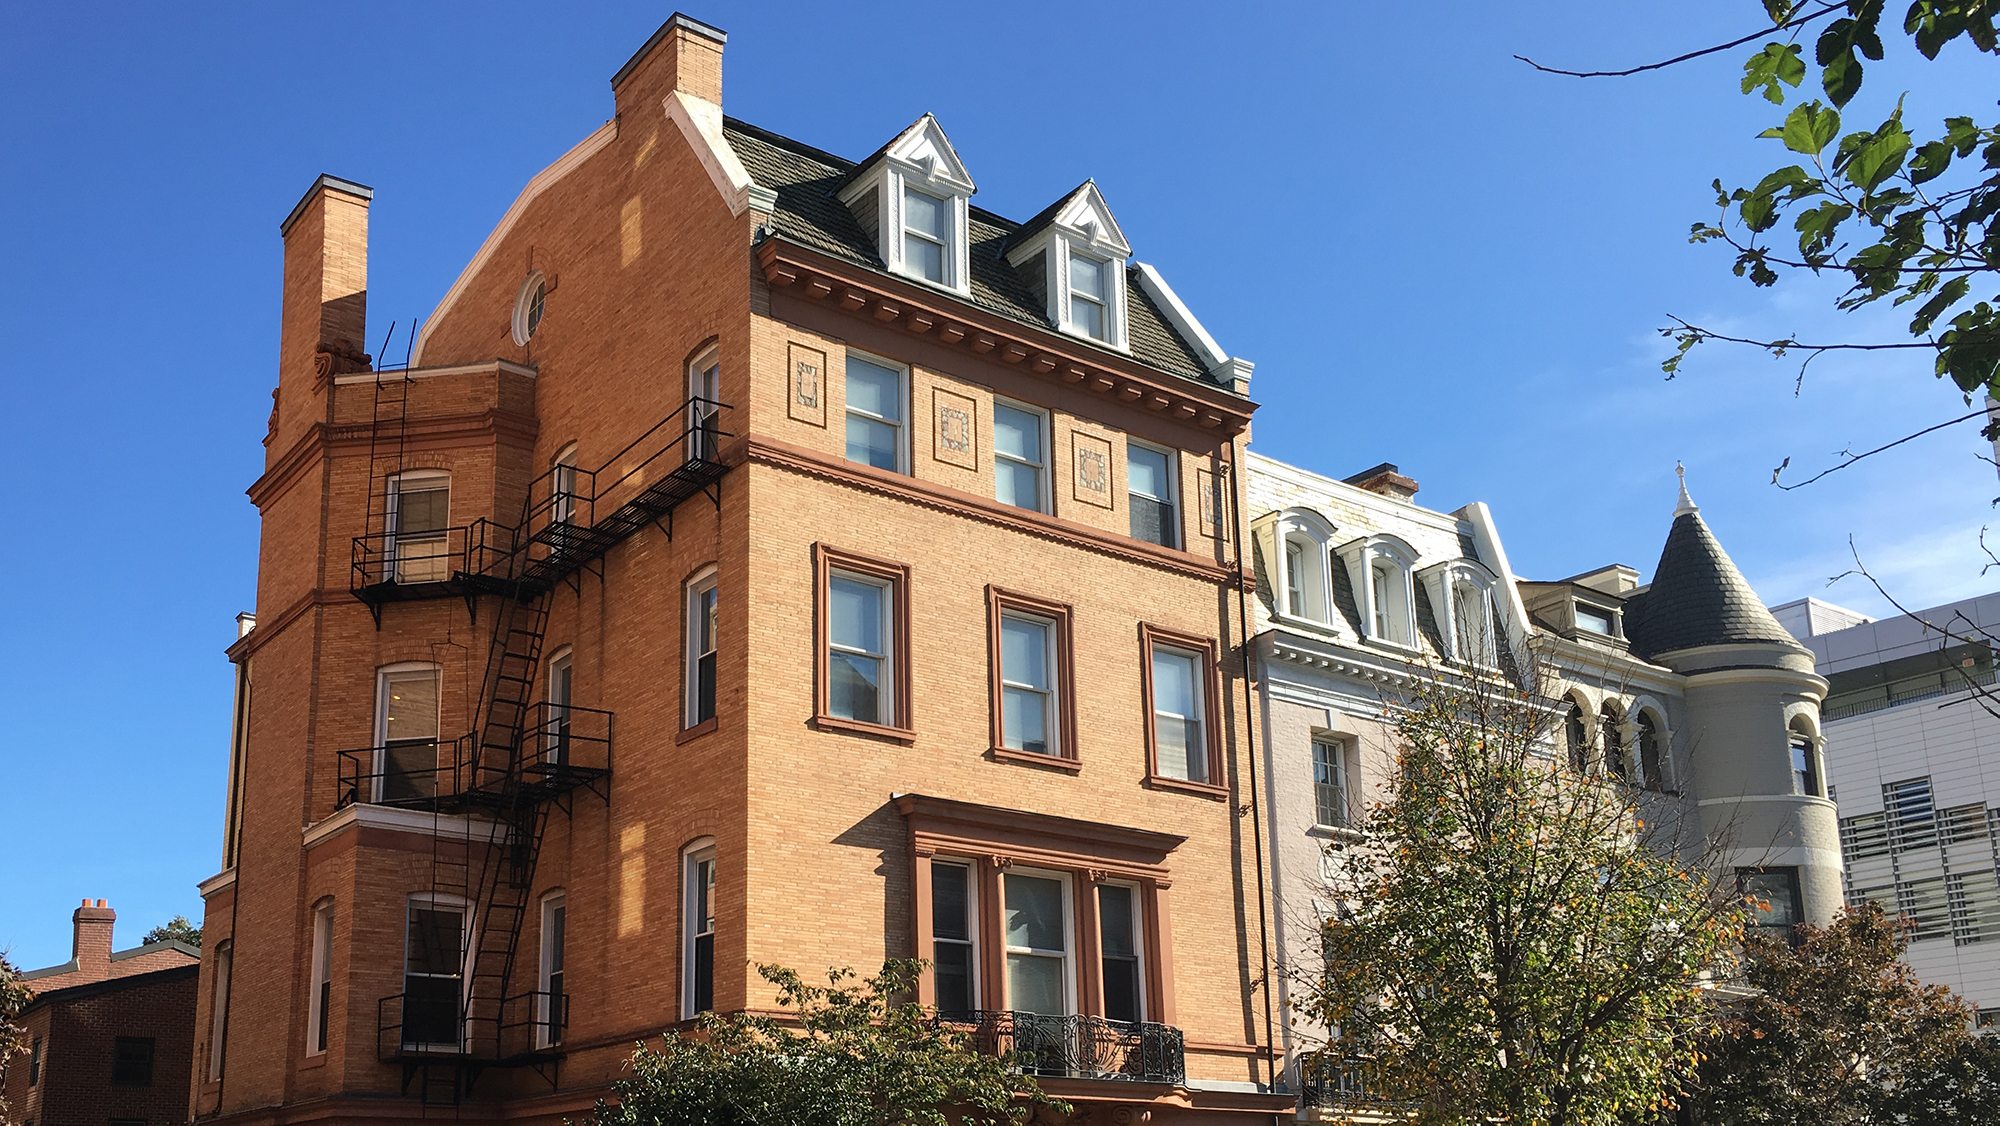 The University of Utah's Hinckley Institute of Politics has purchased a historic building in Washington, D.C., with gifts from the Orrin G. Hatch Foundation and the Kem and Carolyn Gardner family.